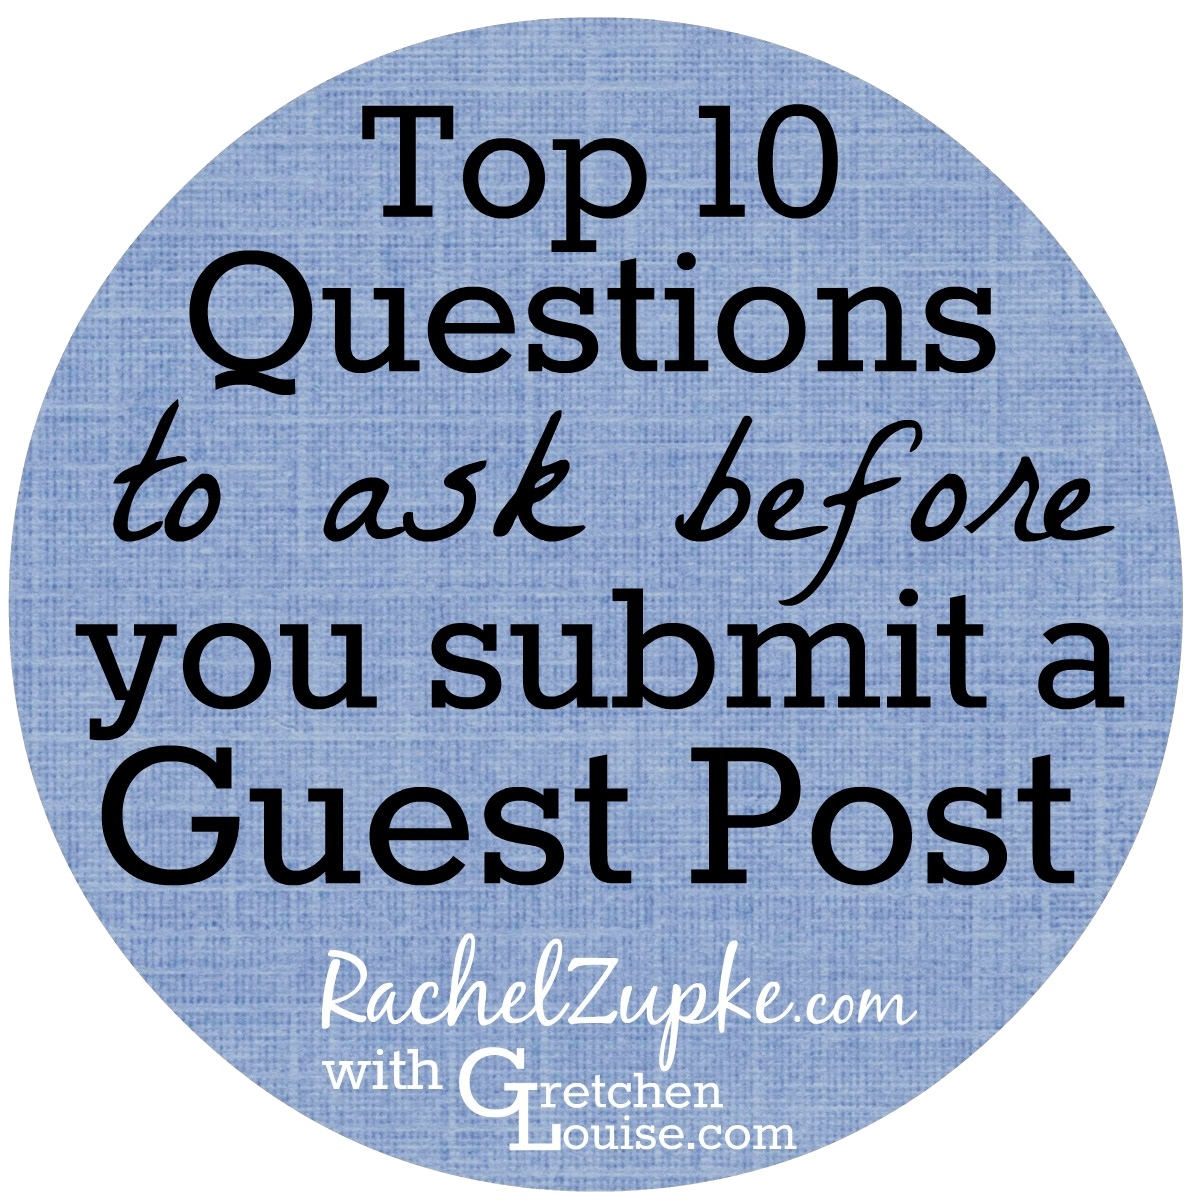 Top 10 Questions to Ask Before You Submit a Guest Post